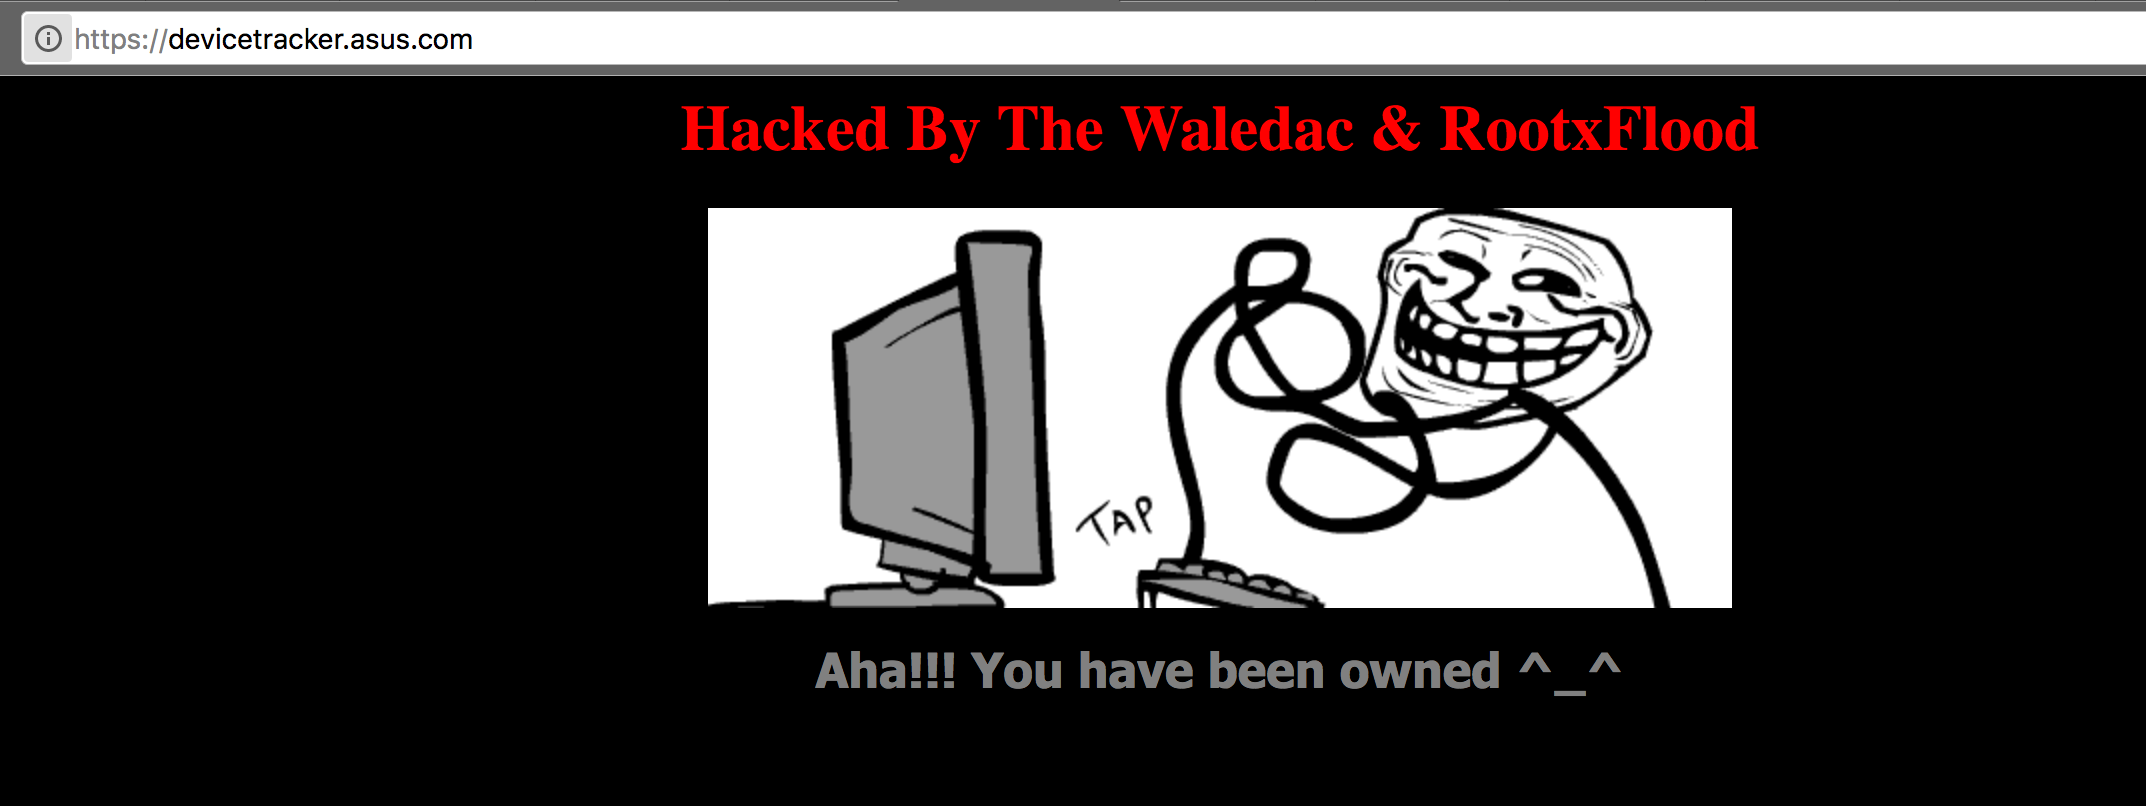 Asus Device Tracker Hacked